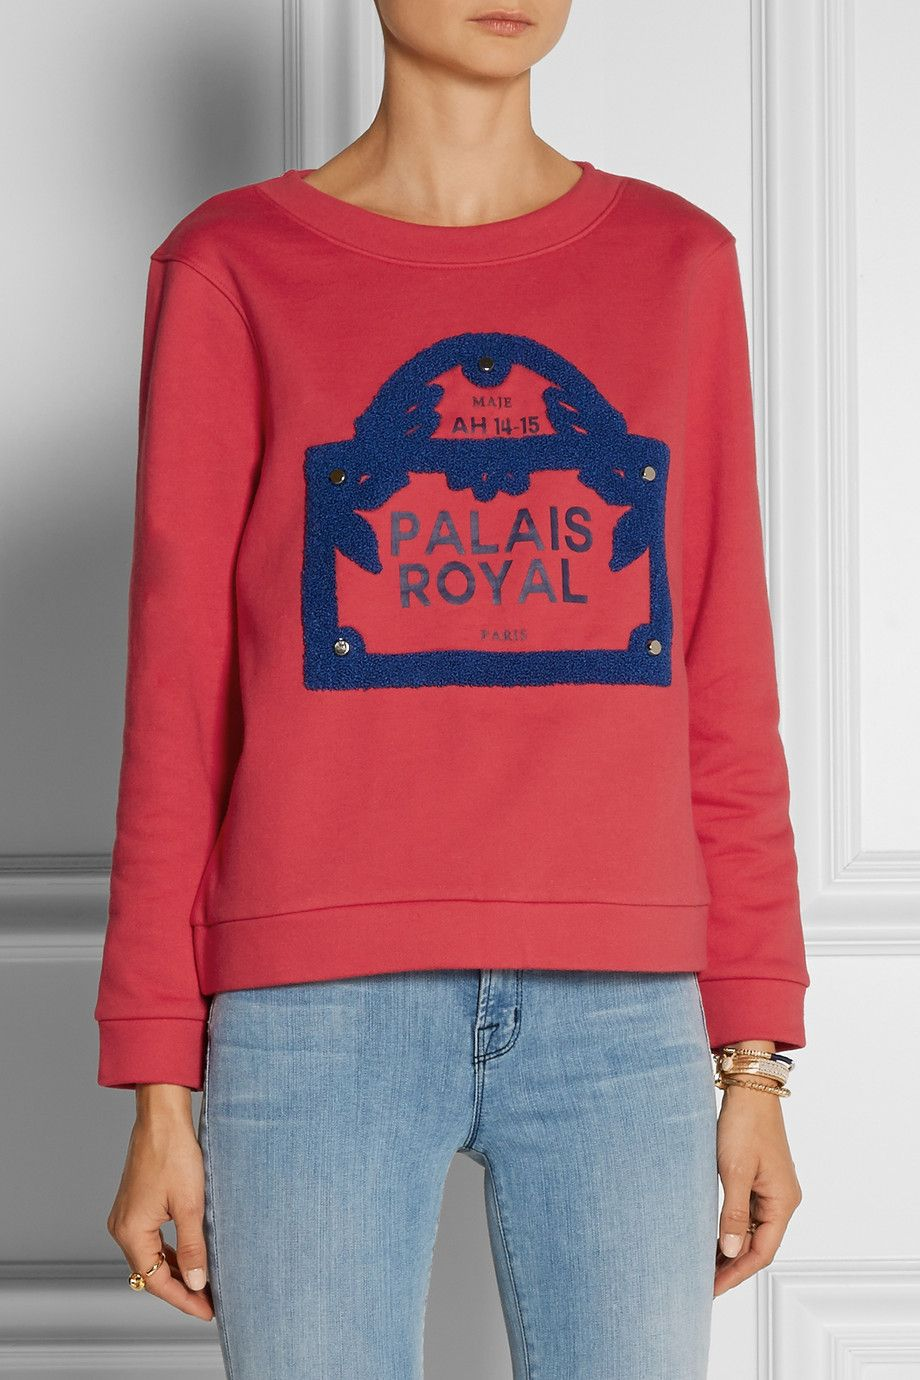 Maje|Guillaume embellished cotton French terry sweatshirt|NET-A-PORTER.COM